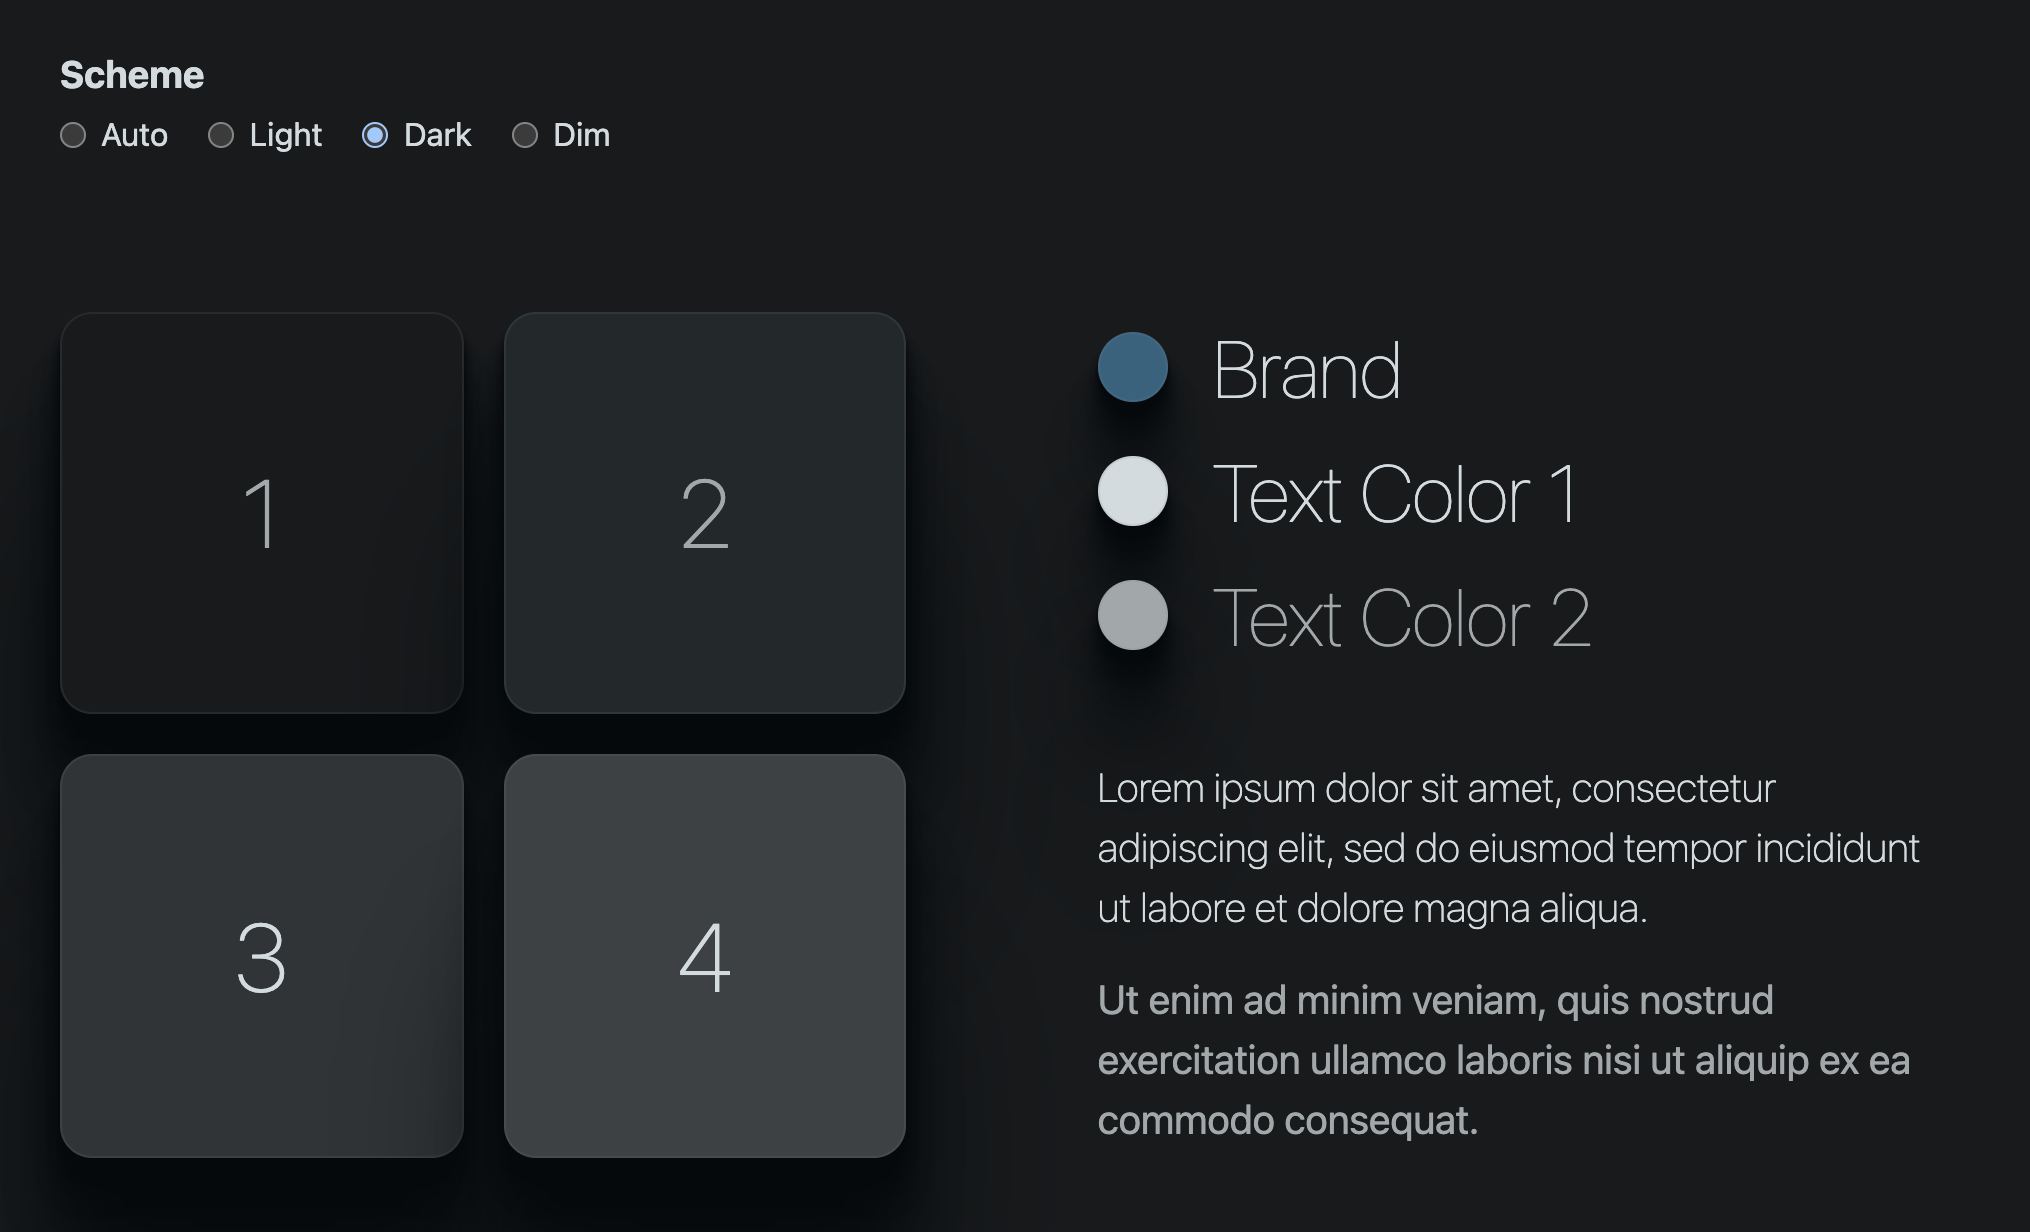 preview of the end result of the dark theme